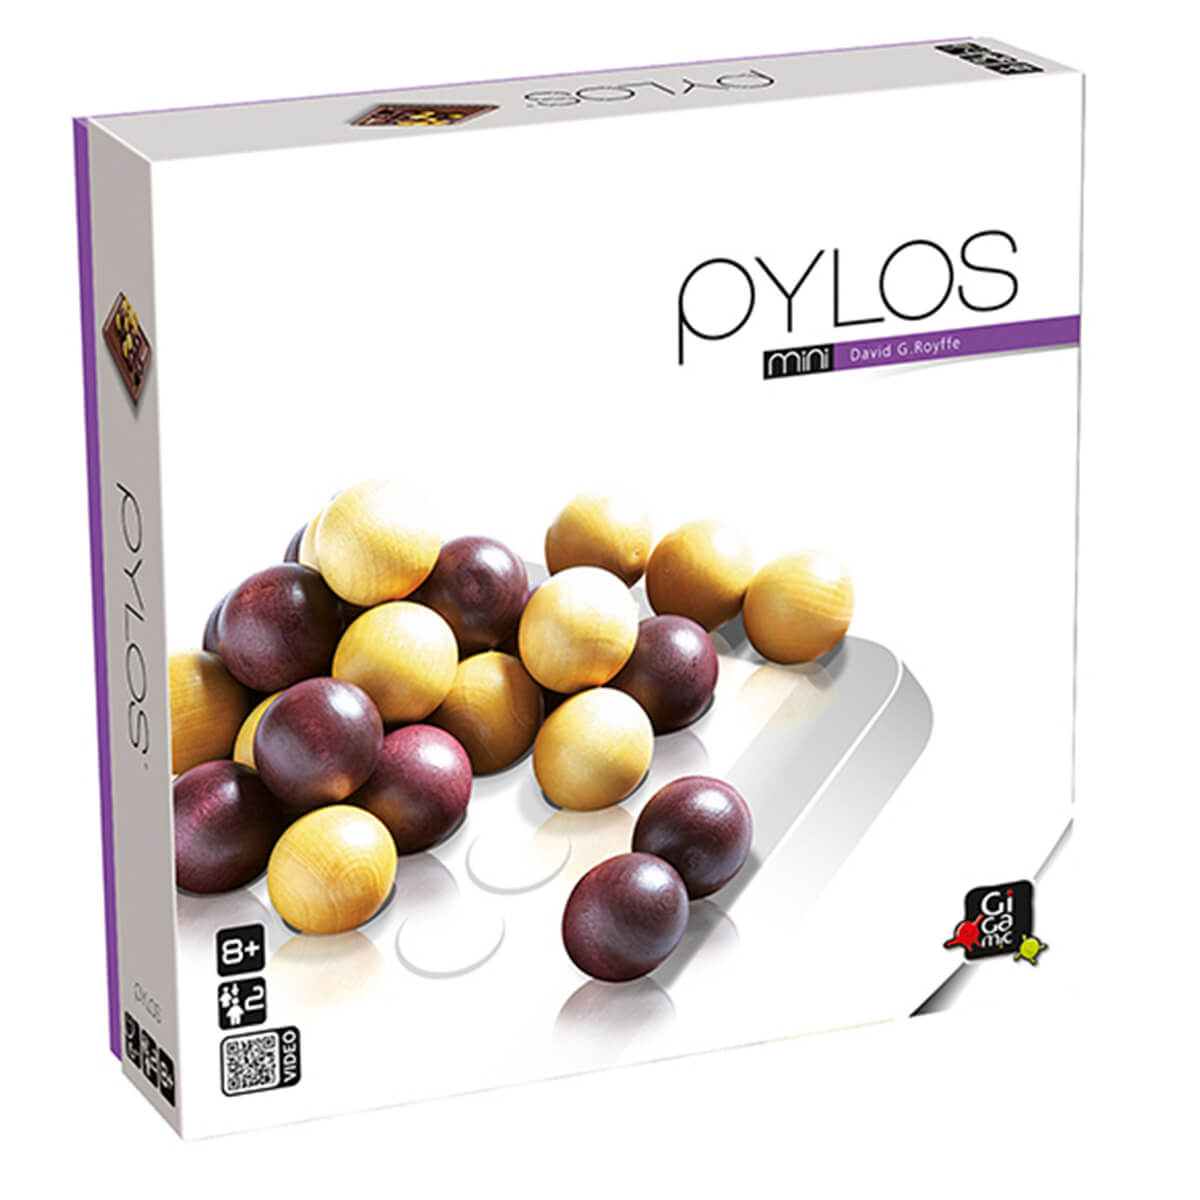 Gigamic Pylos mini GDPY Board Game